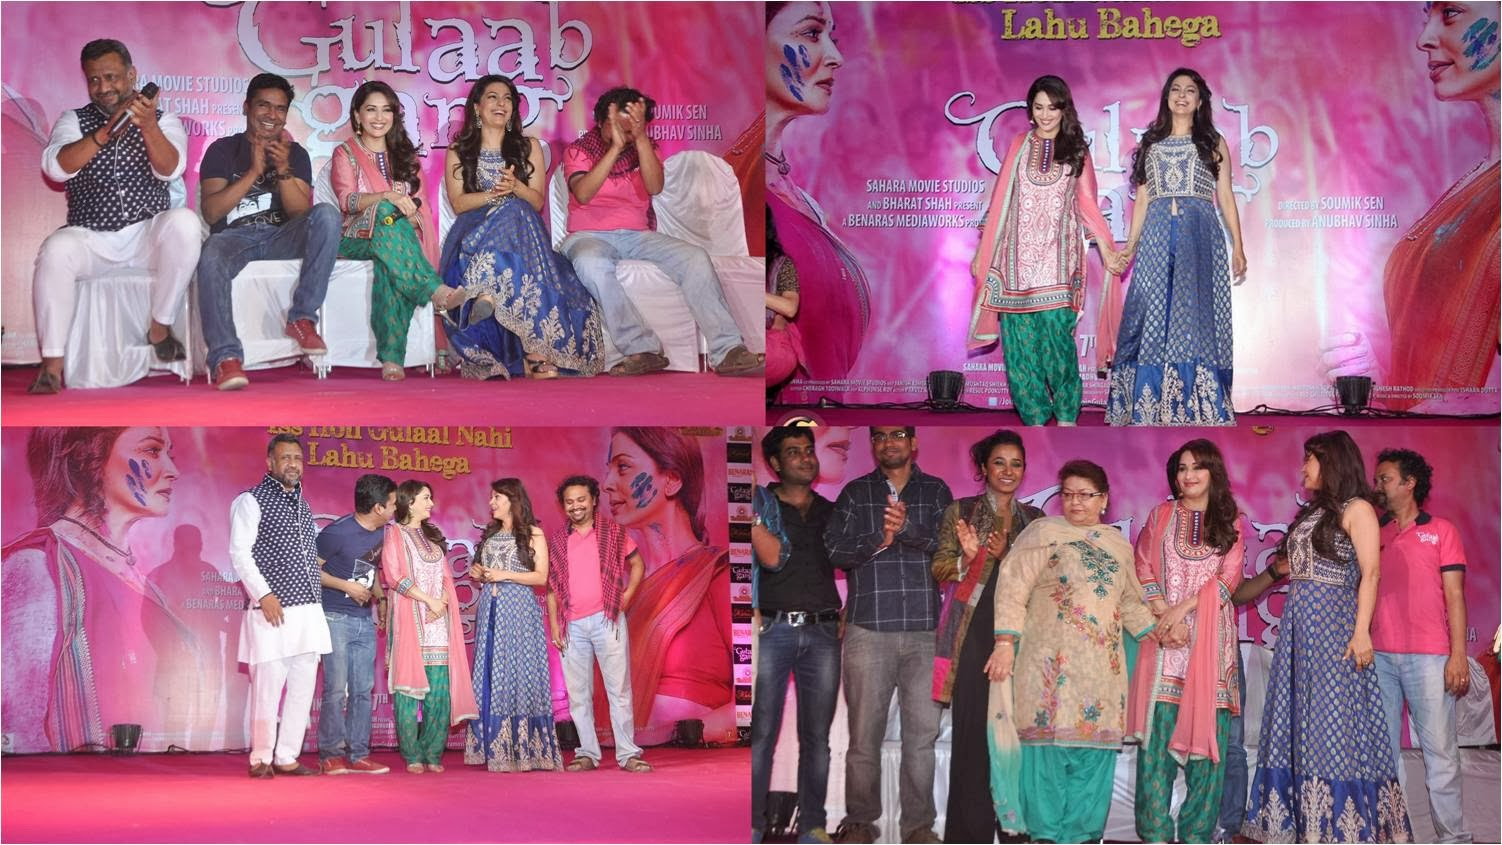 Star studded Gulaab Gang trailer launch saw gorgeous Madhuri, stunning Juhi, renowned choreographer Saroj Khan and the team